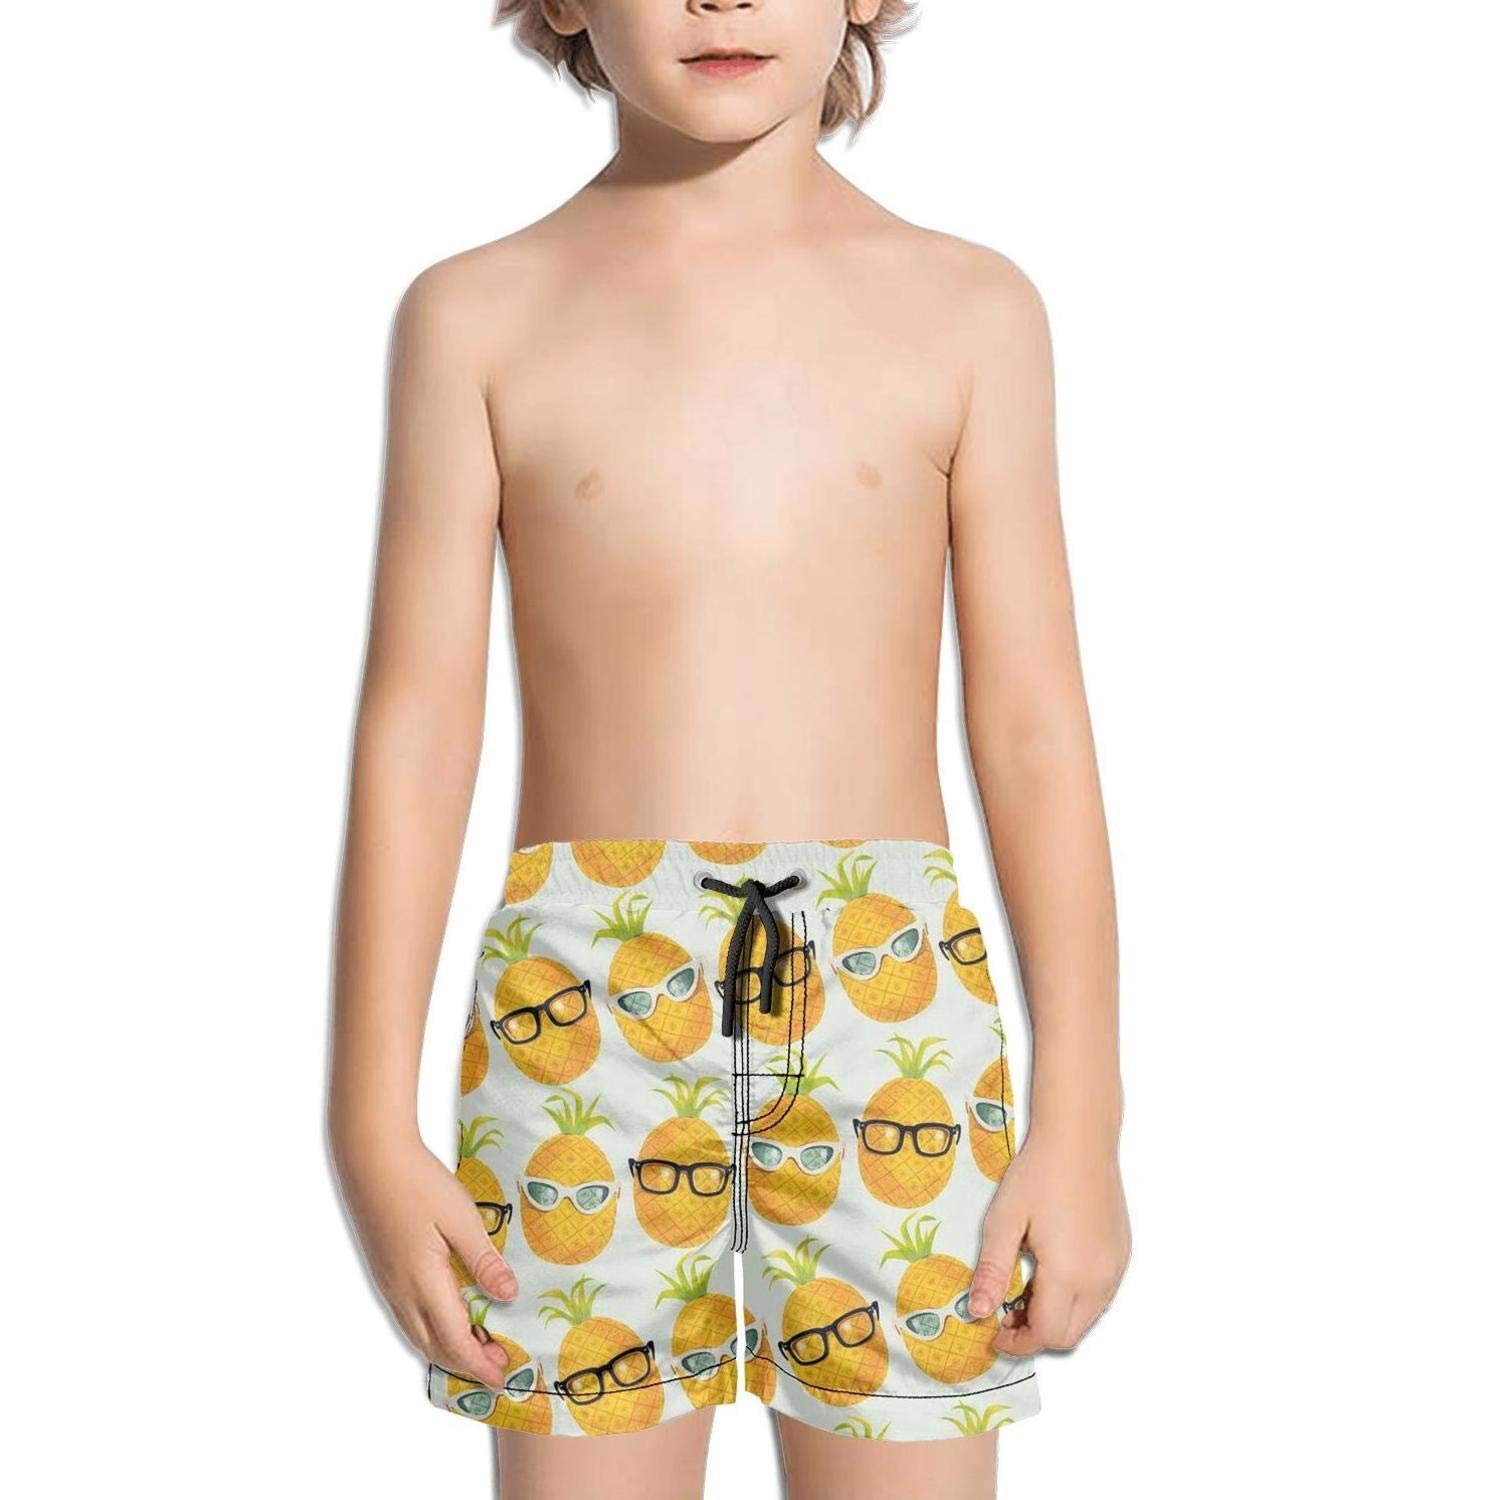 Ouxioaz Boys' Swim Trunk Pineapple with Glasses Cool Beach Board Shorts